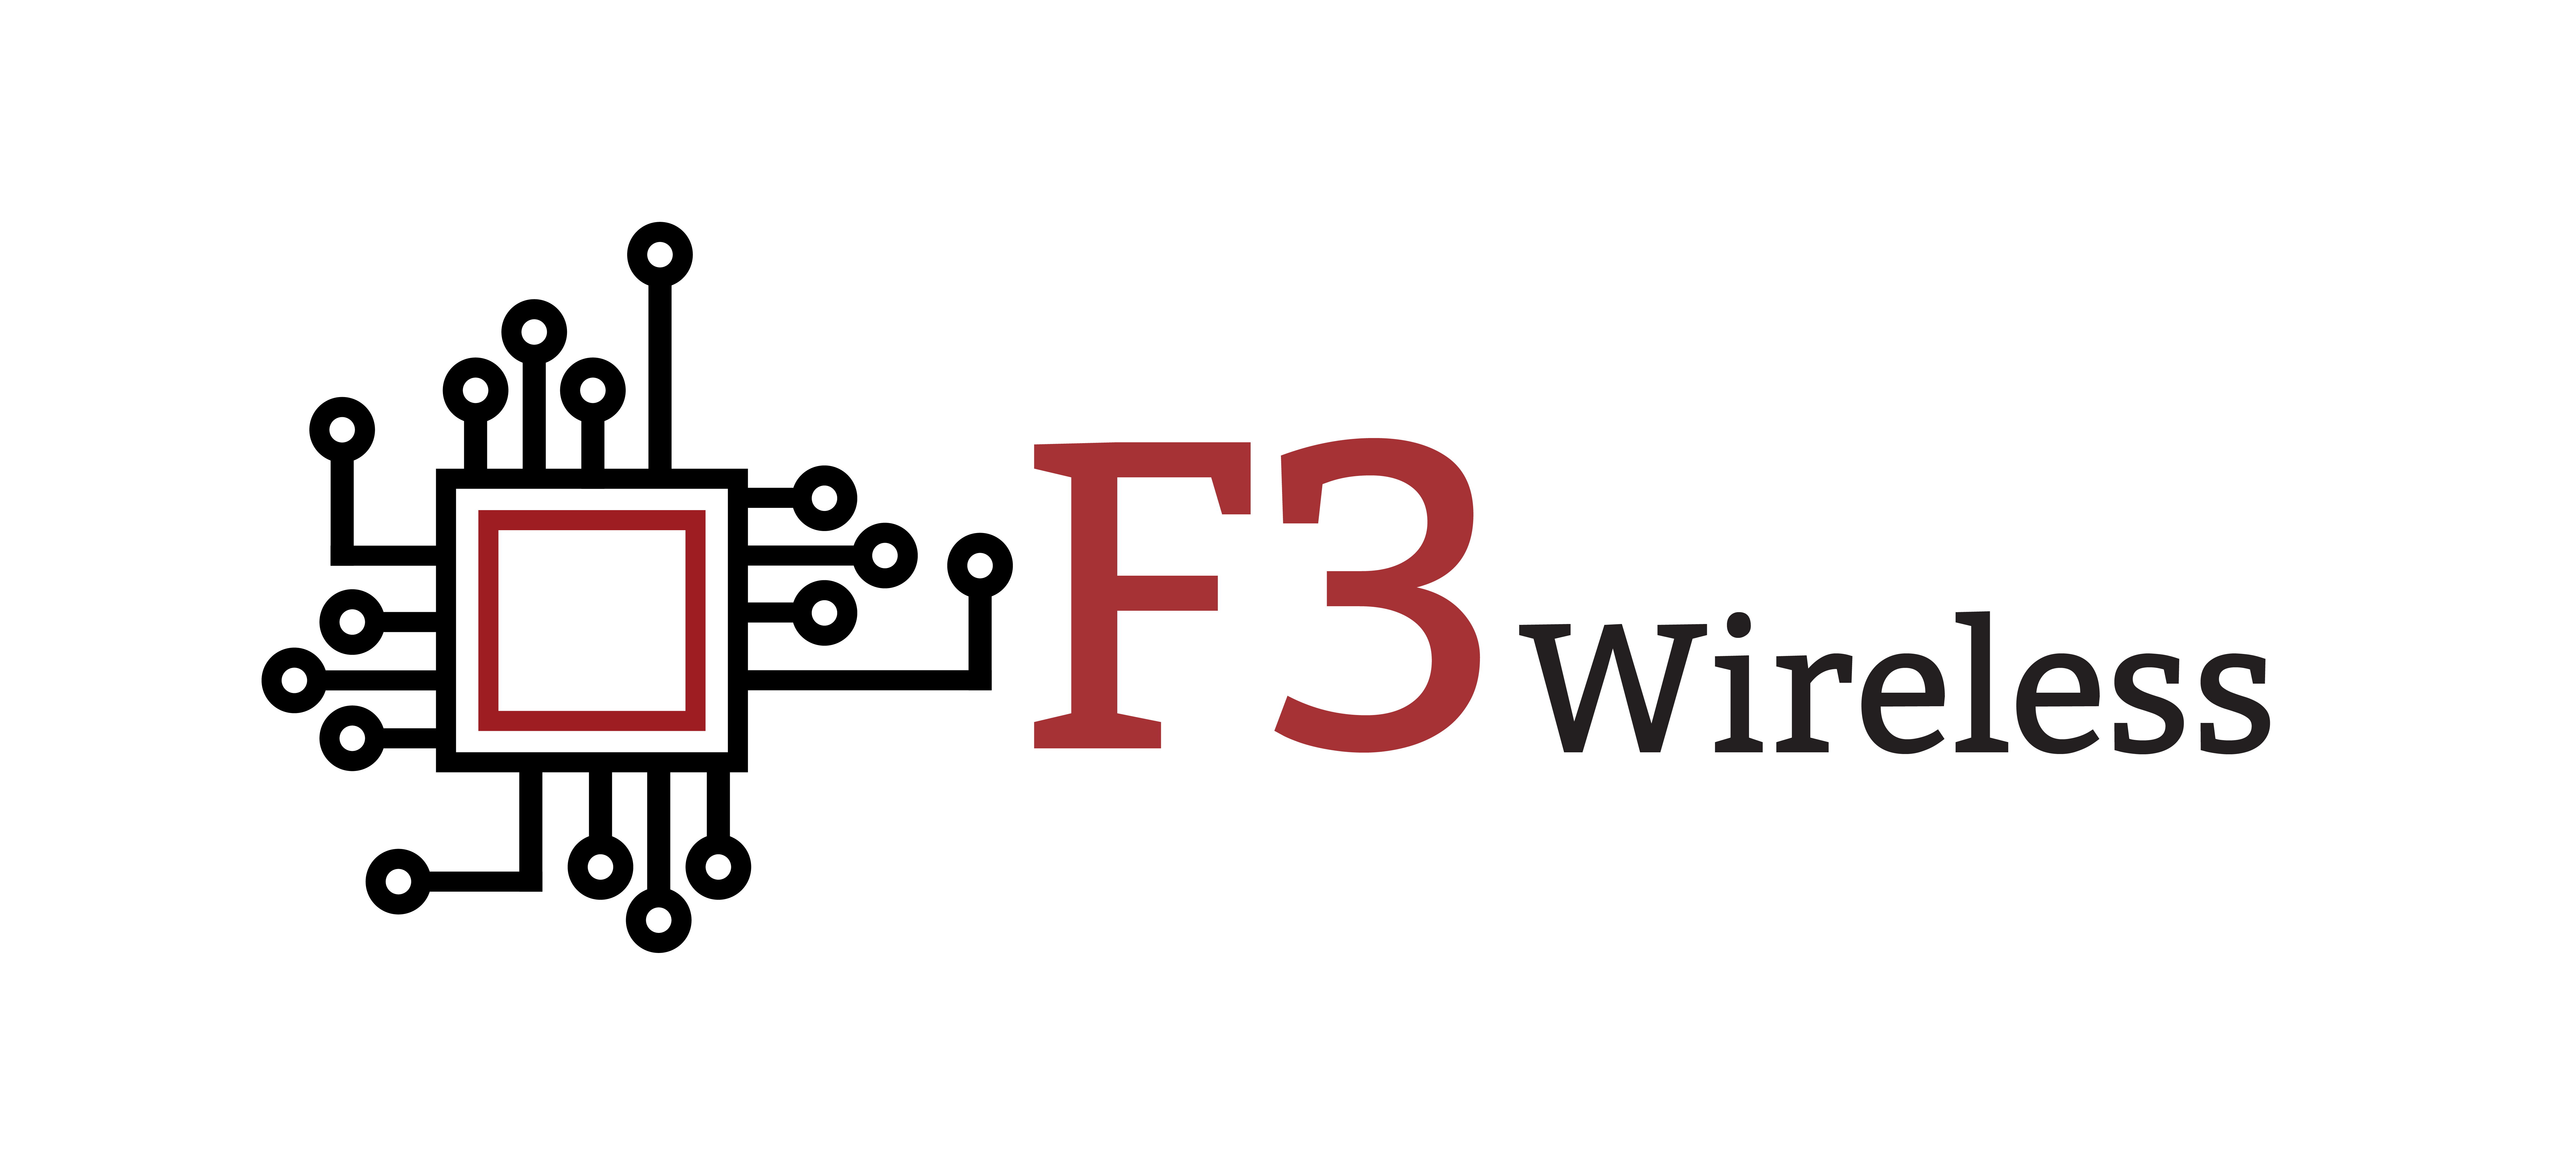 F3 Wireless logo